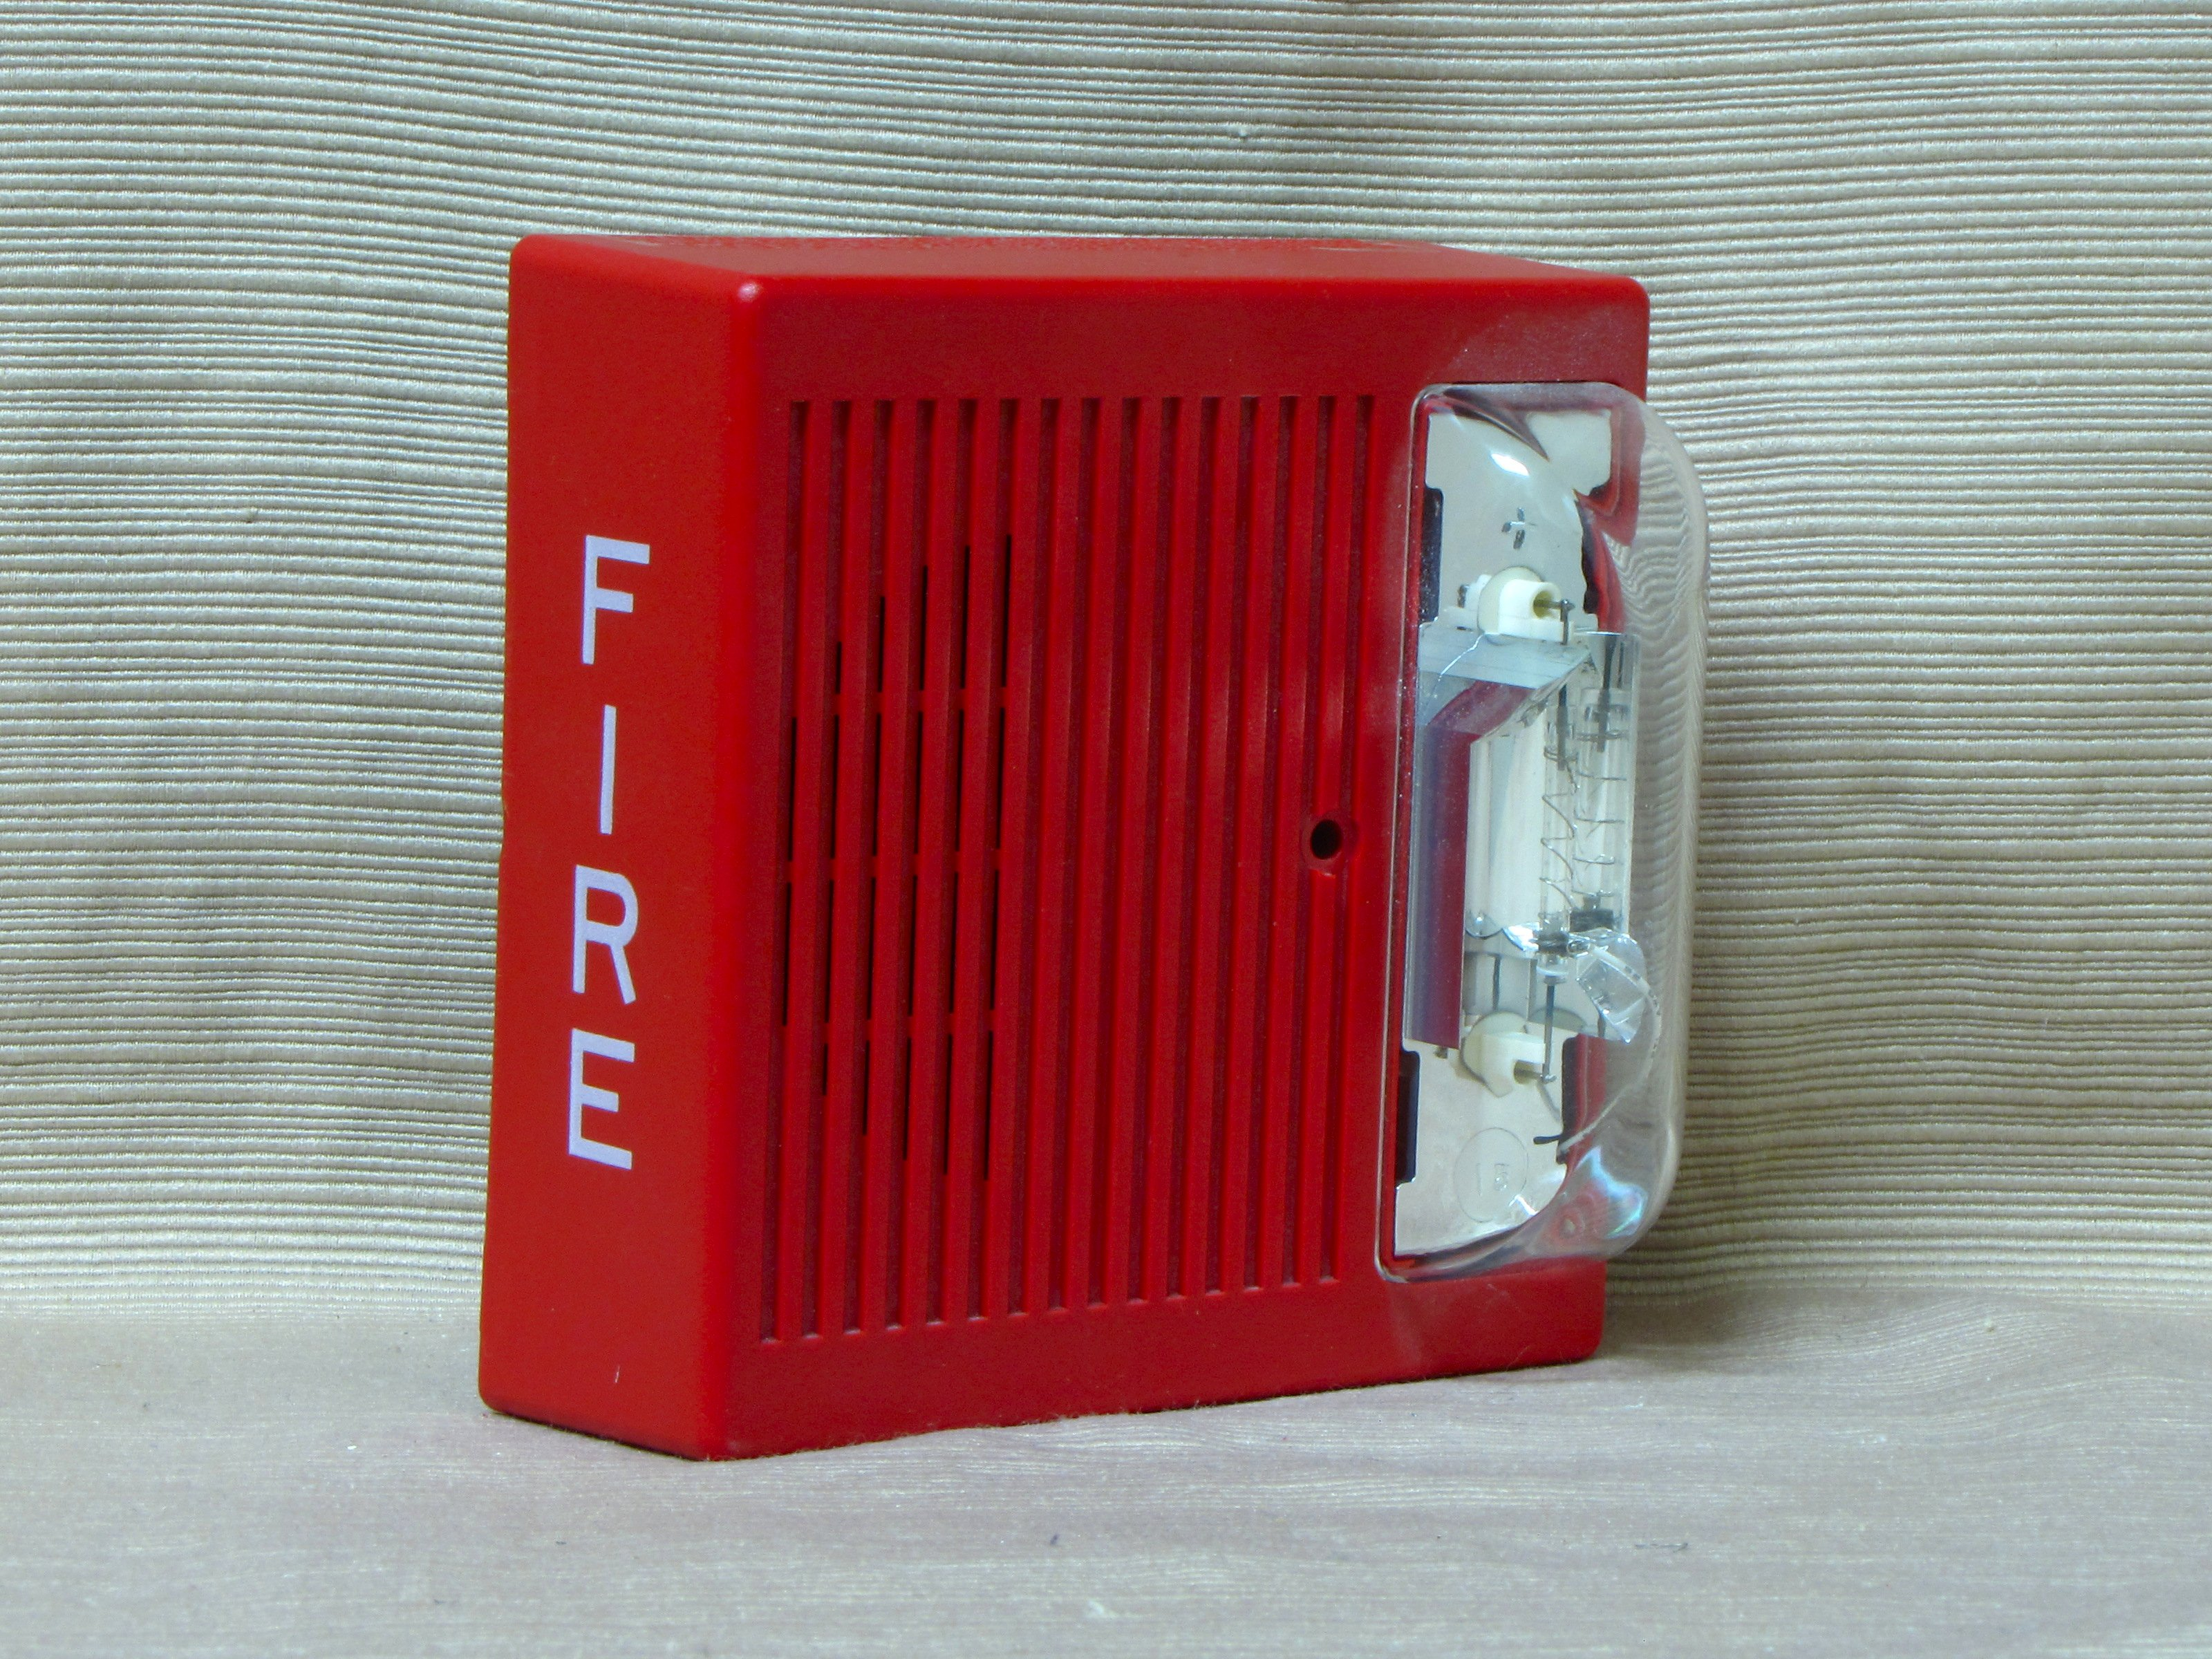 Wheelock As-24Mcw-Fr As-24Mcw Red Wall Mount Fire Alarm ...  |Wheelock Fire Alarm Horn Strobe